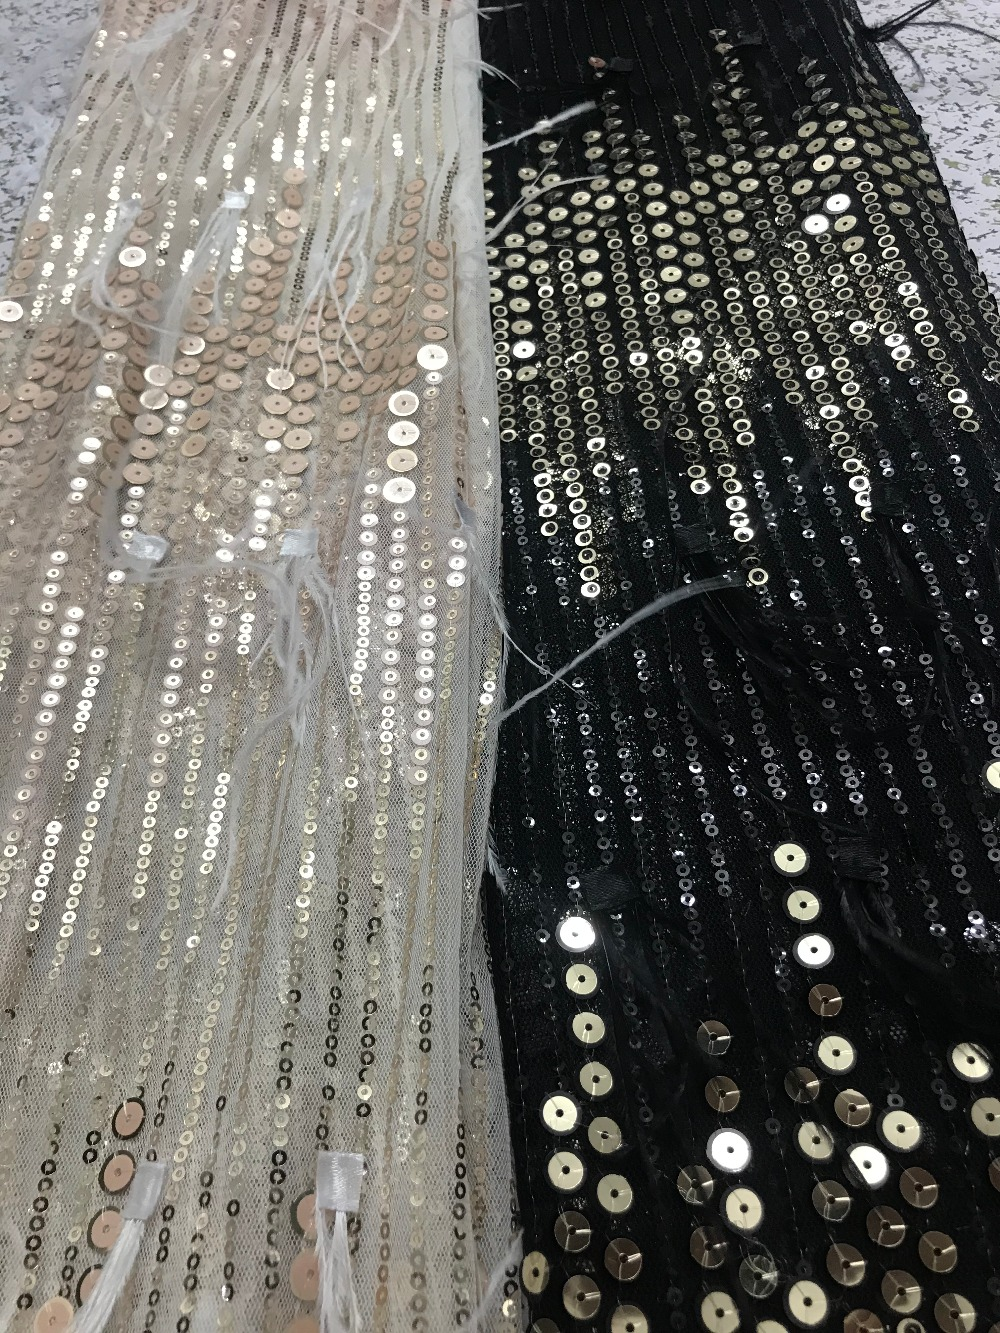 African Lace Fabric 3d Lace Beads Cotton Lace Fabric African Real Wax Print Stoffen Per Meter Voor Kleding Nigeria Parts & Accessories